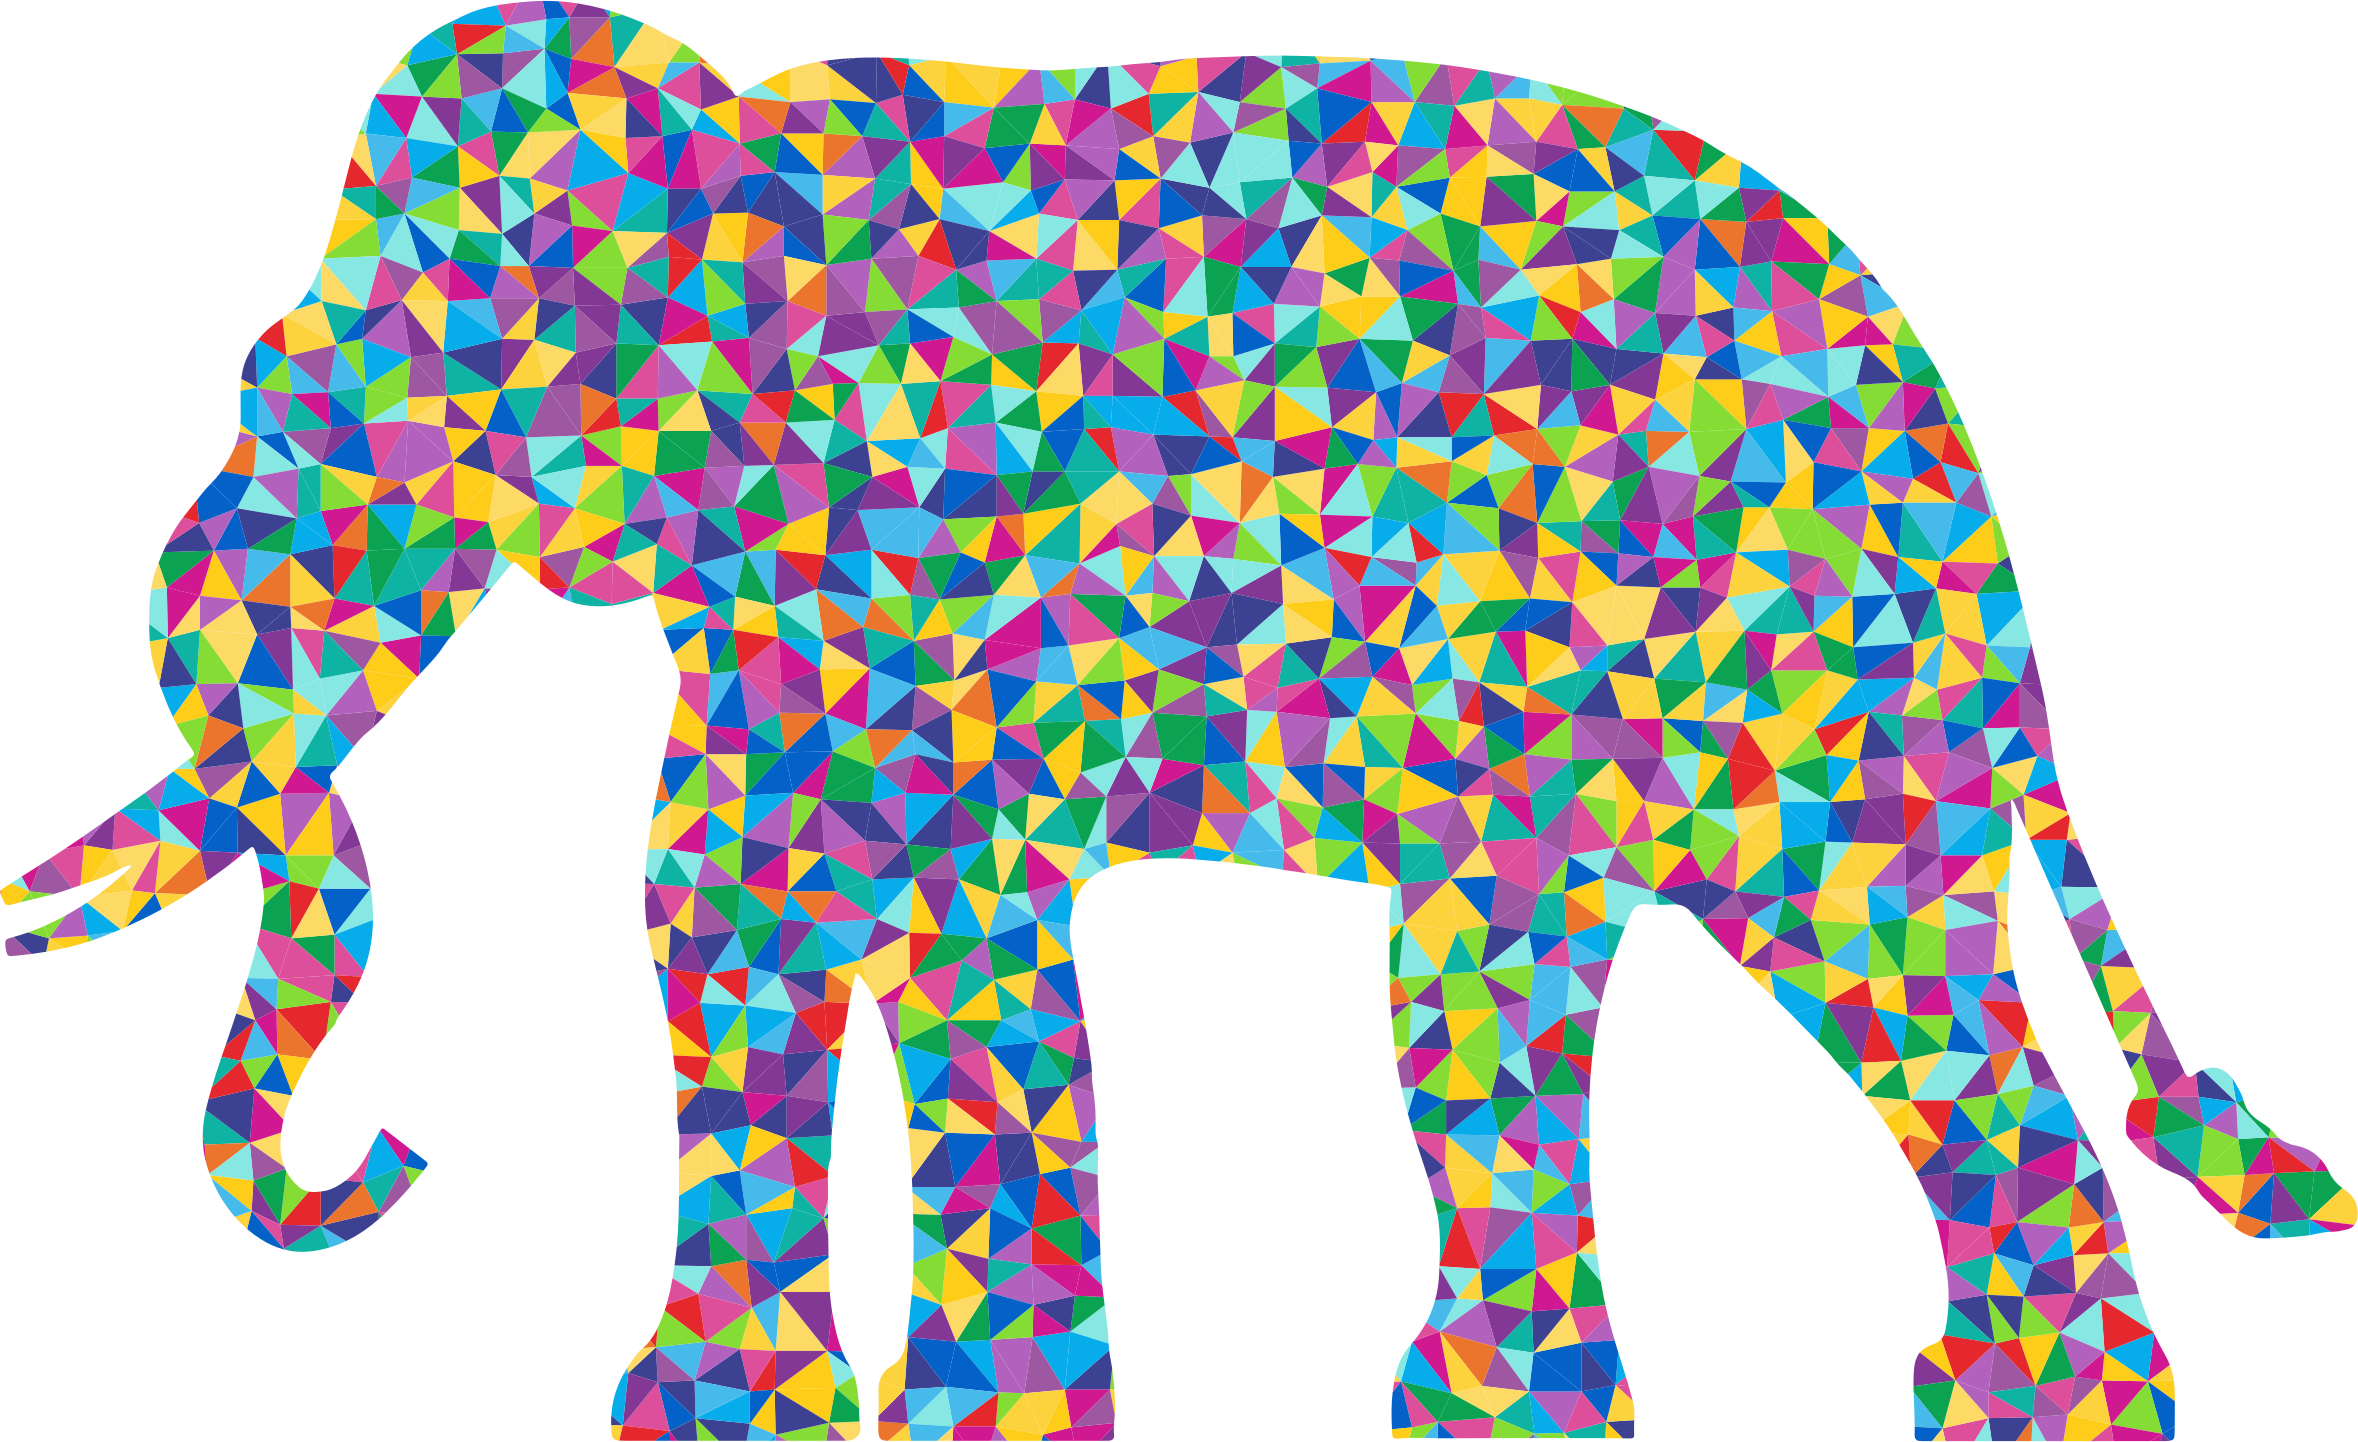 Low Poly Prismatic Elephant Silhouette by GDJ